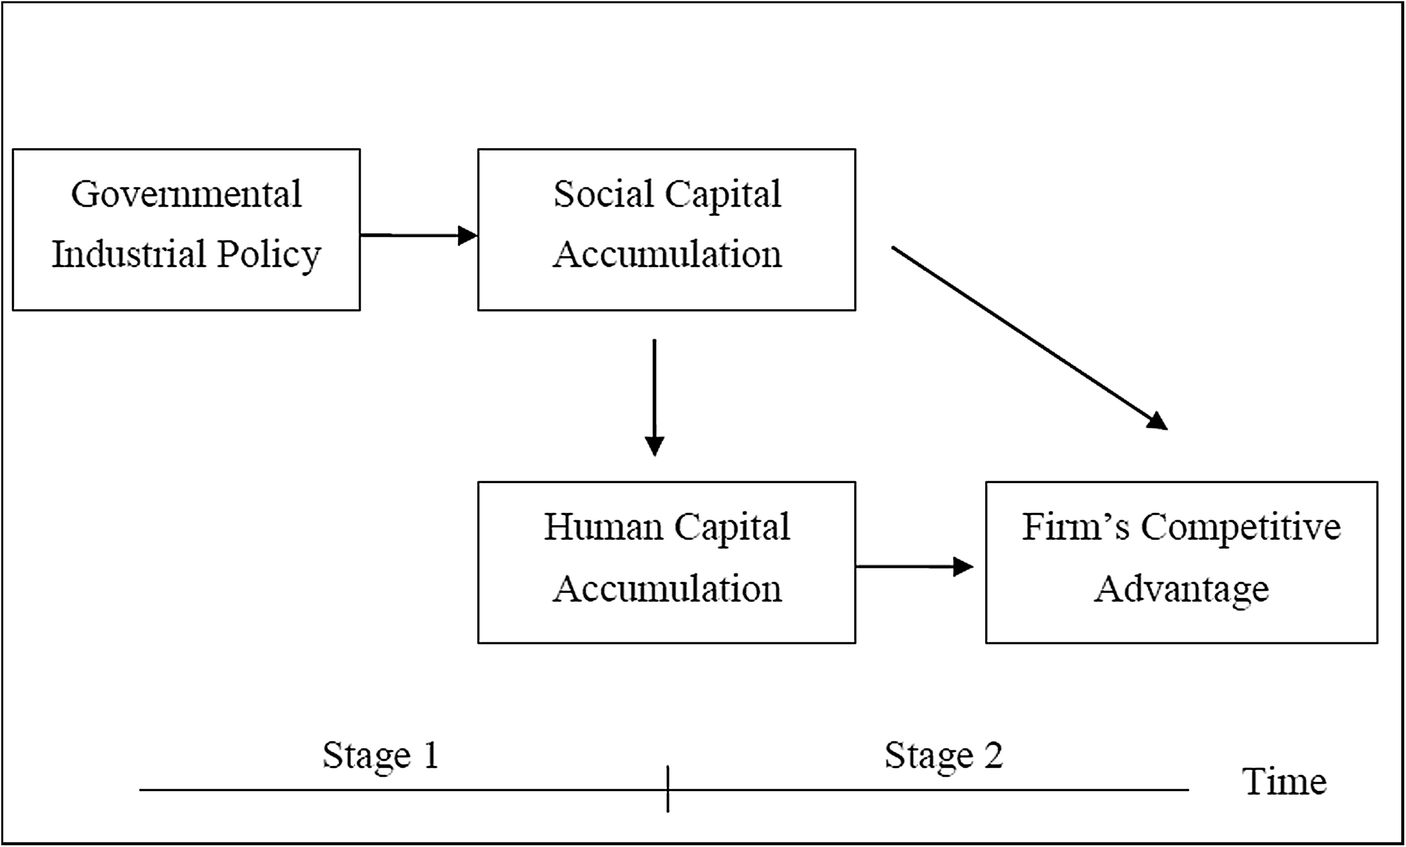 Industrial policy, social capital, human capital, and firm